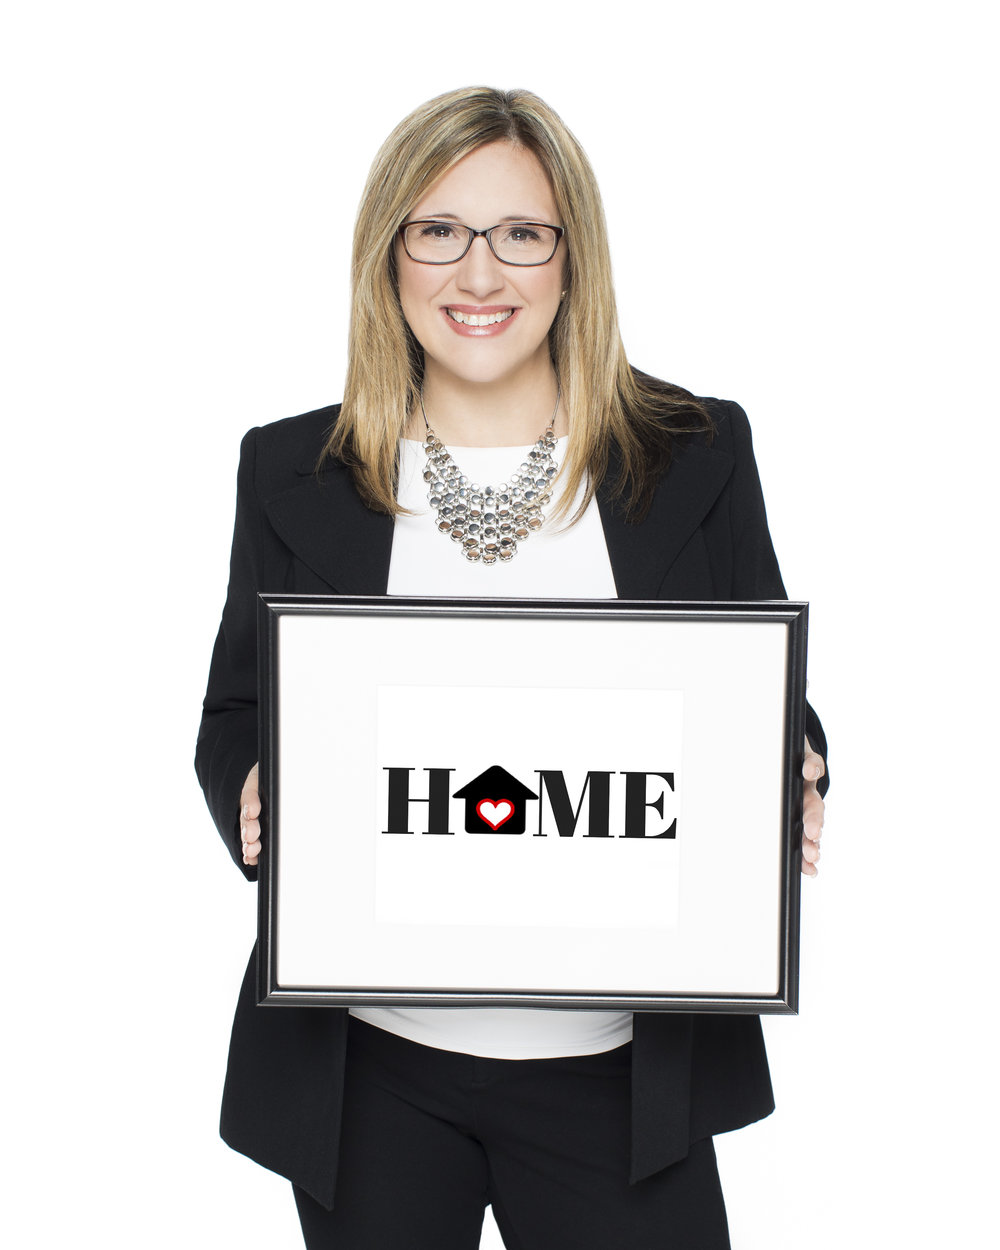 Suzanne - HomeSign - HighRes.jpg